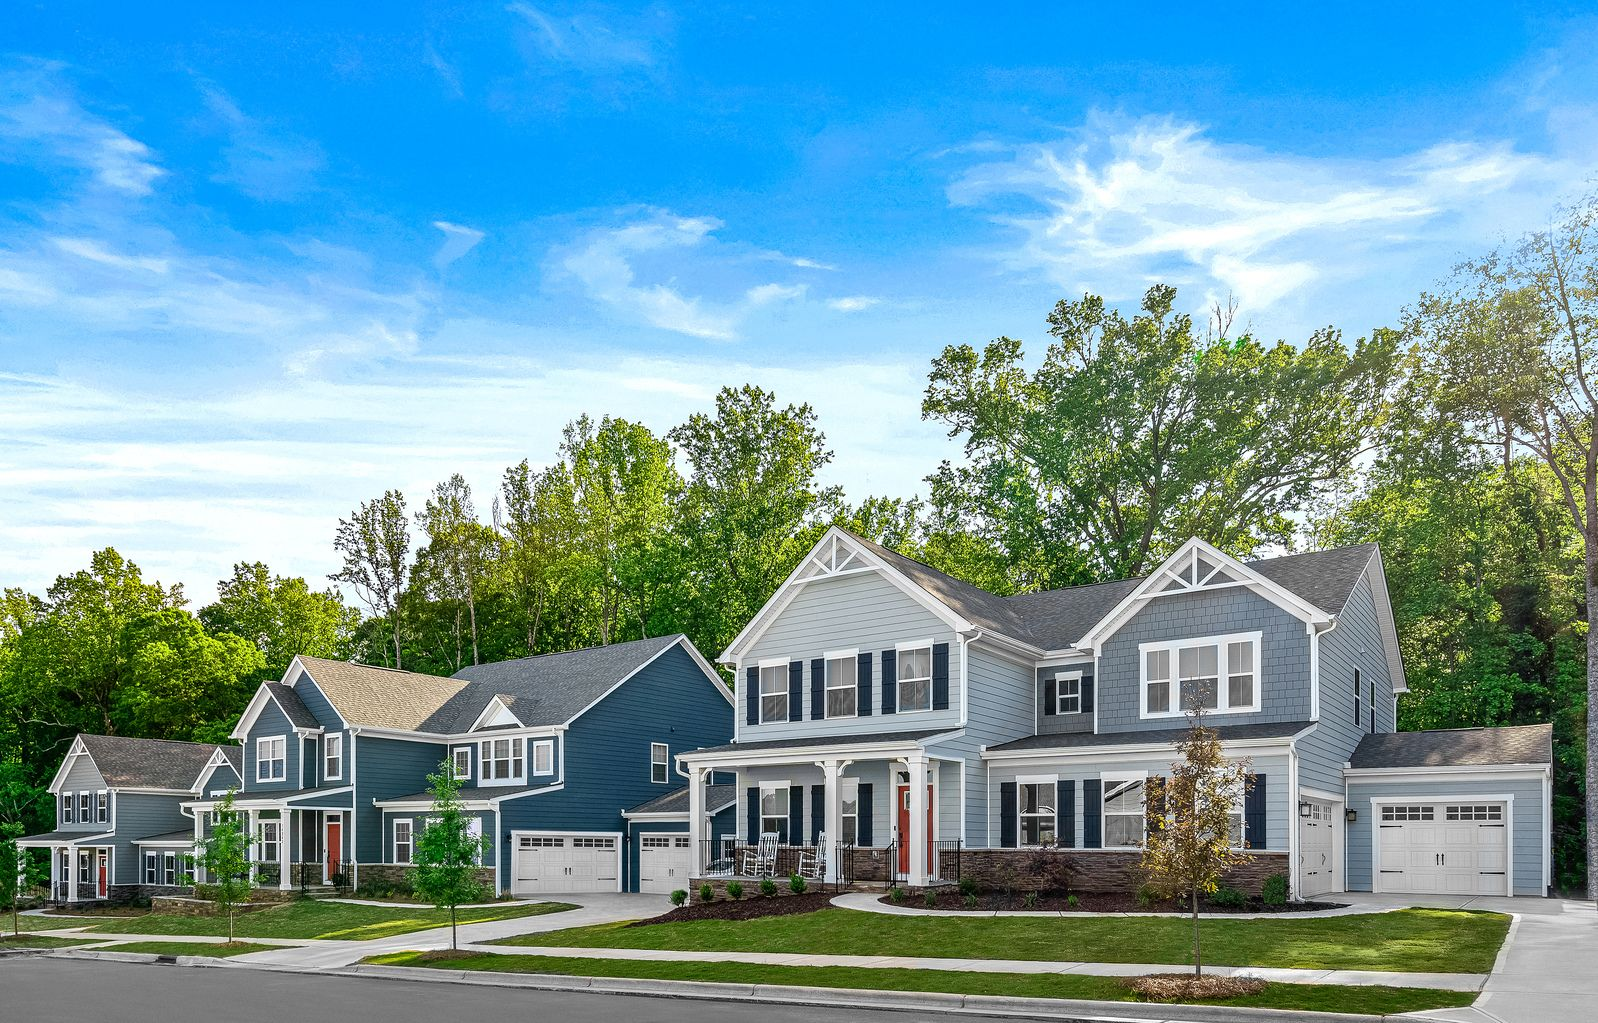 ONLY 4 HOMESITES REMAIN IN SOUGHT-AFTER KENMARE:Final homesites just released!Join the VIP Listto be first in line to choose your new homesite at Kenmare.